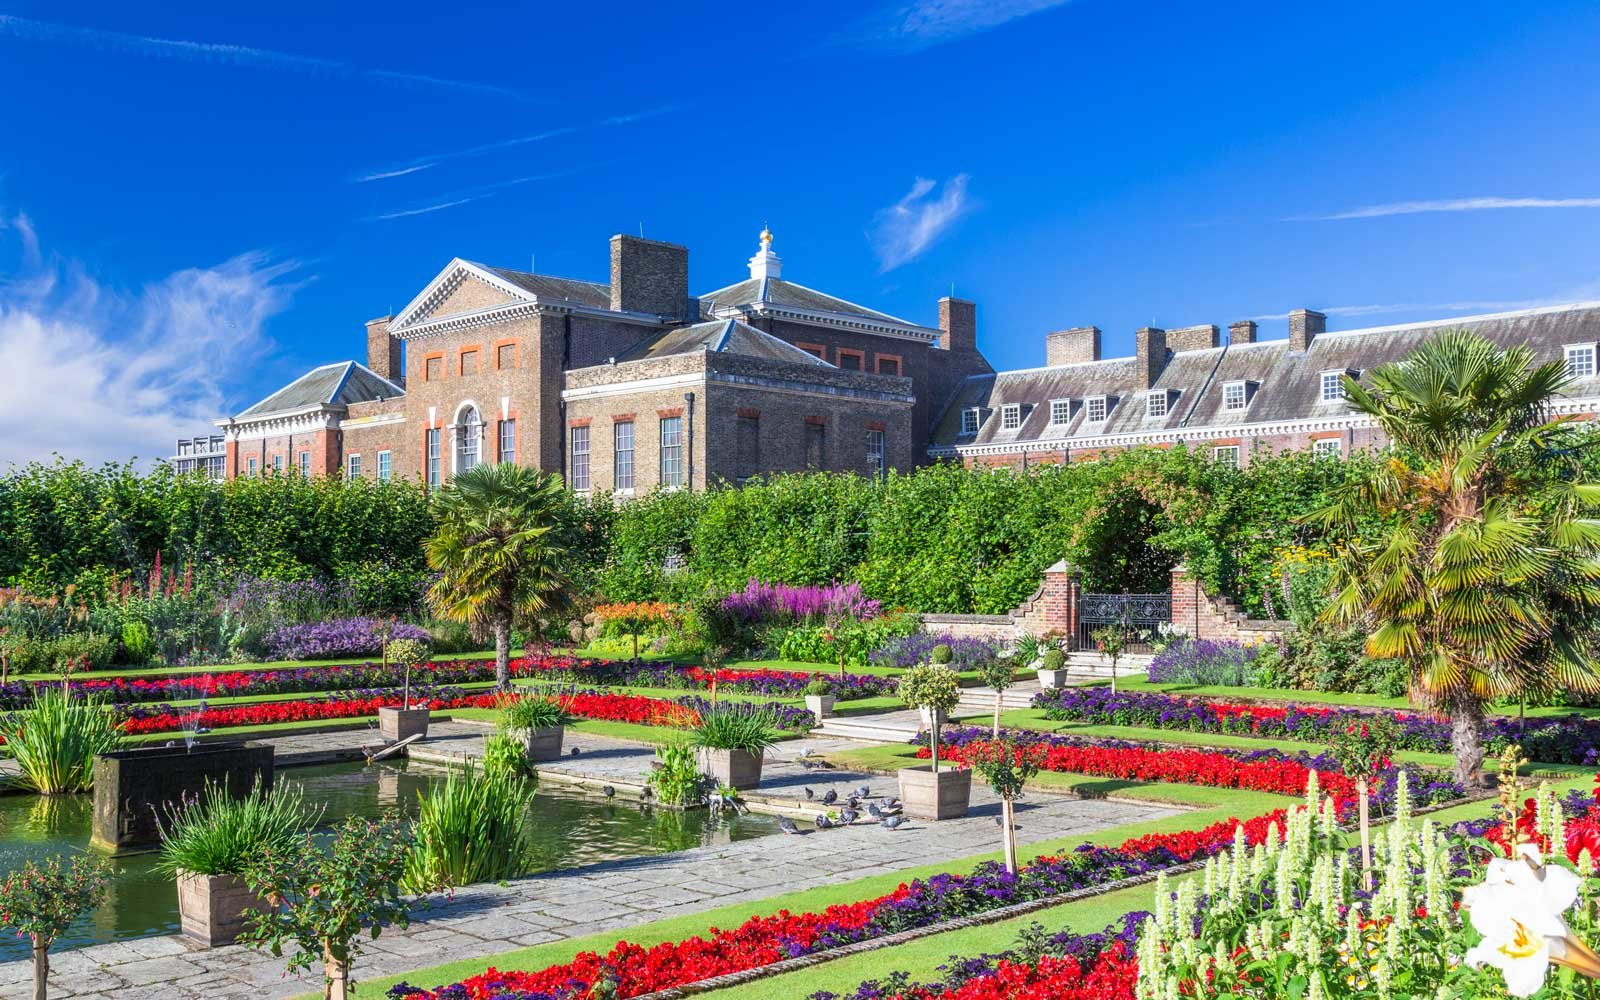 Vibrant gardens at Kensington Palace, in the UK